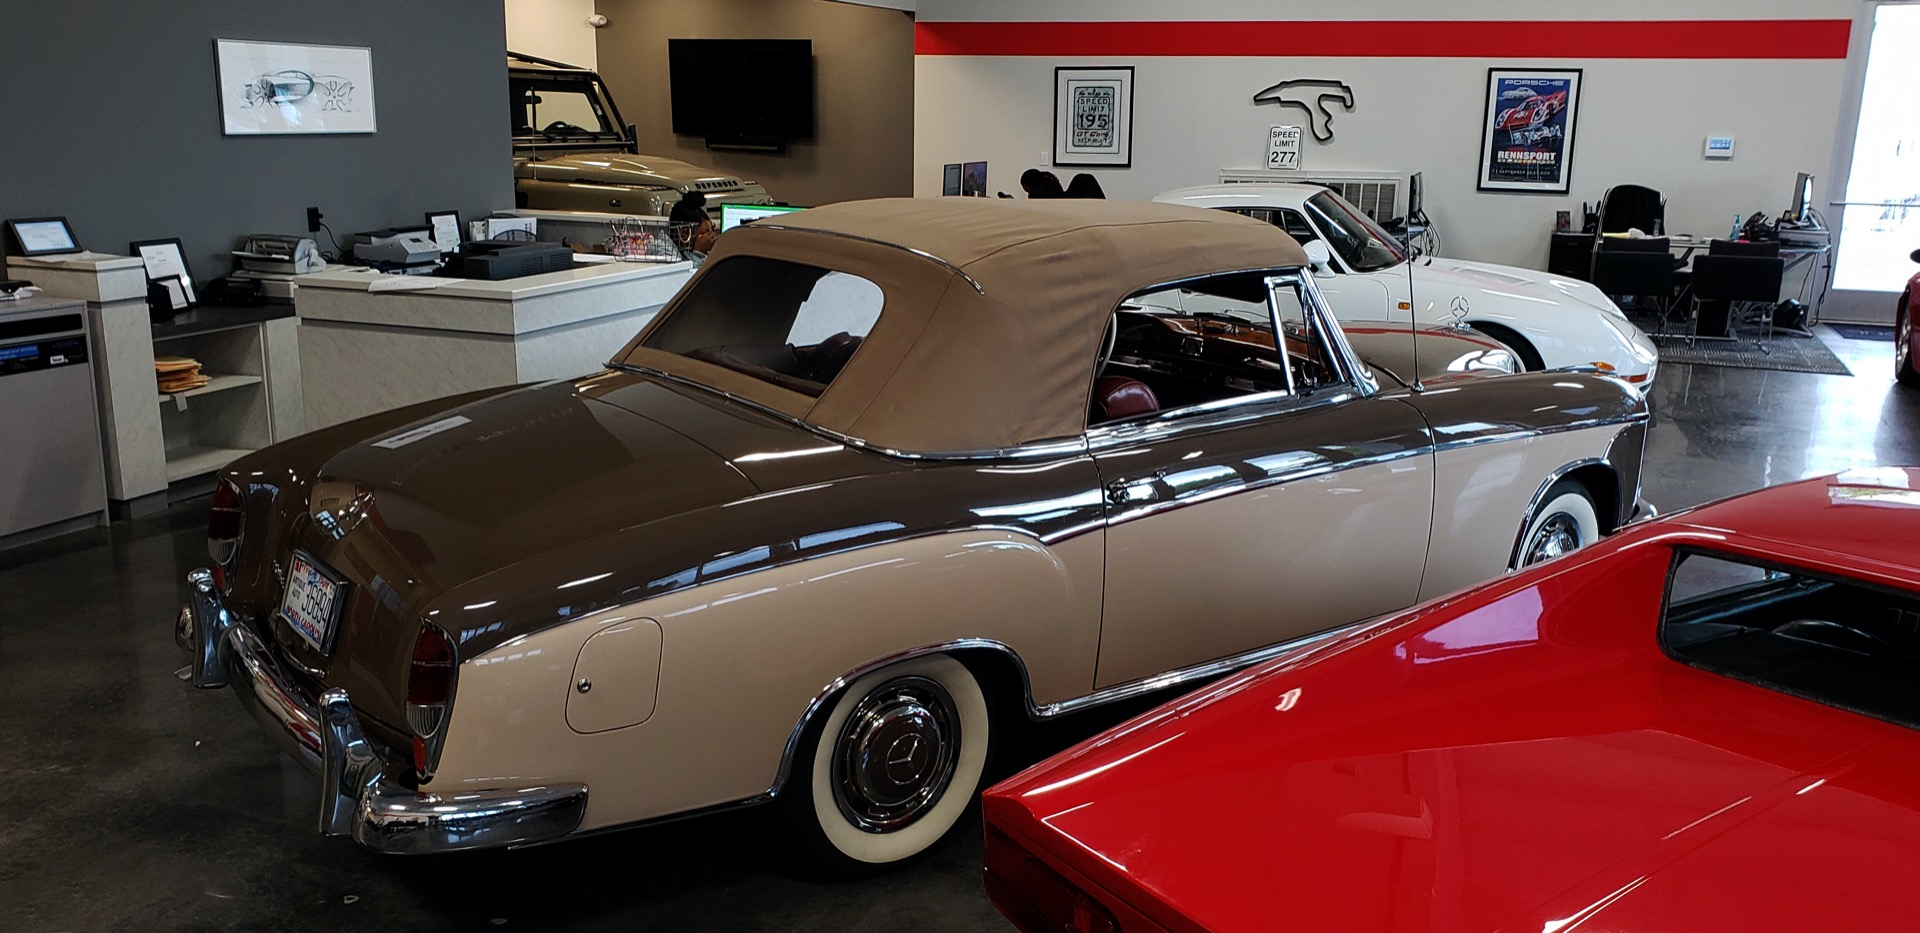 Used 1957 Mercedes-Benz 220 S Cabriolet - Full Restoration for sale Sold at Formula Imports in Charlotte NC 28227 3